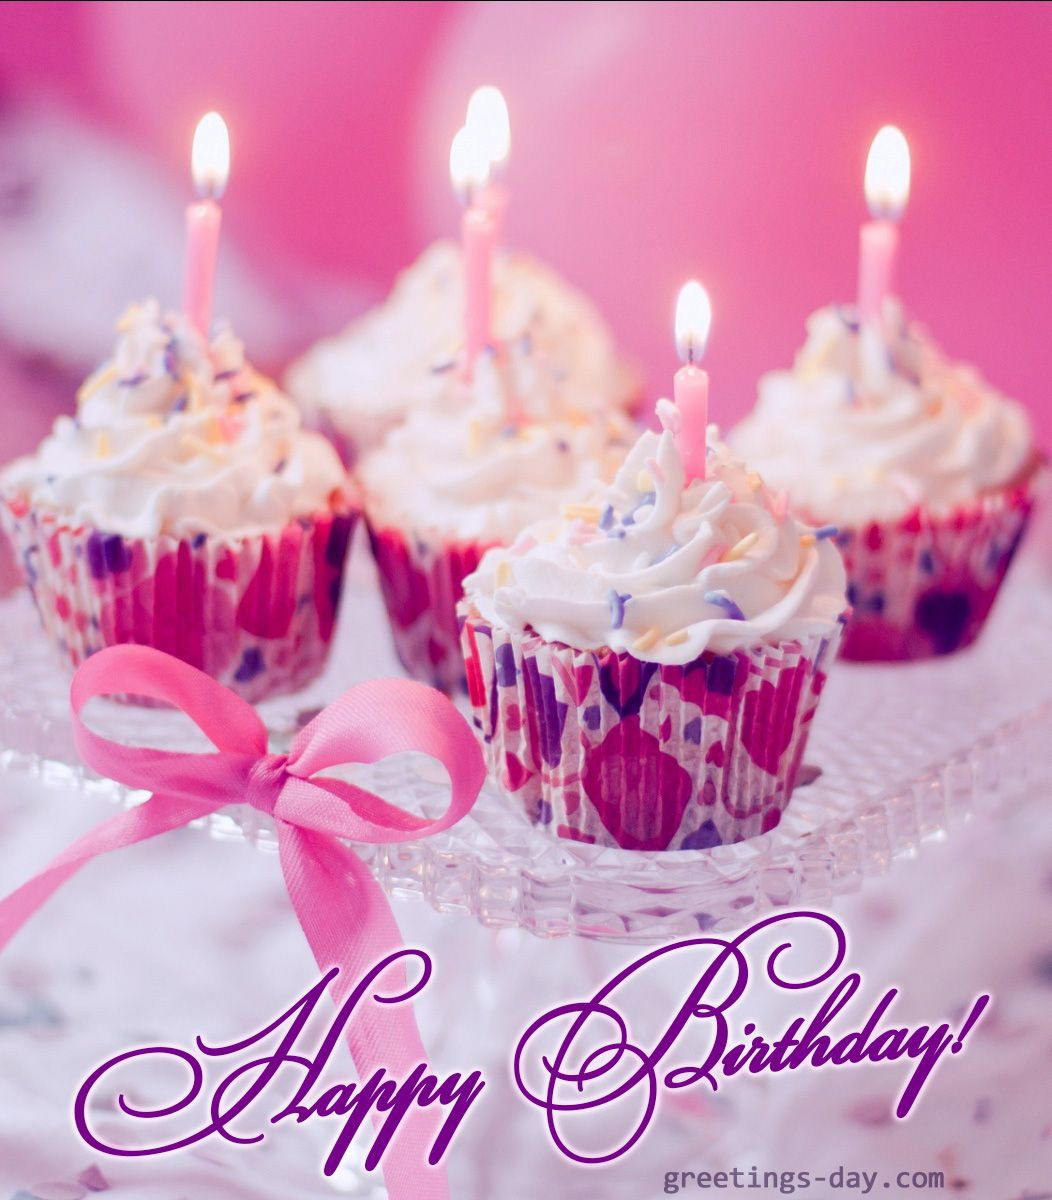 happy birthday pics for her Image result for happy birthday runner girl | Birthday | Pinterest  happy birthday pics for her